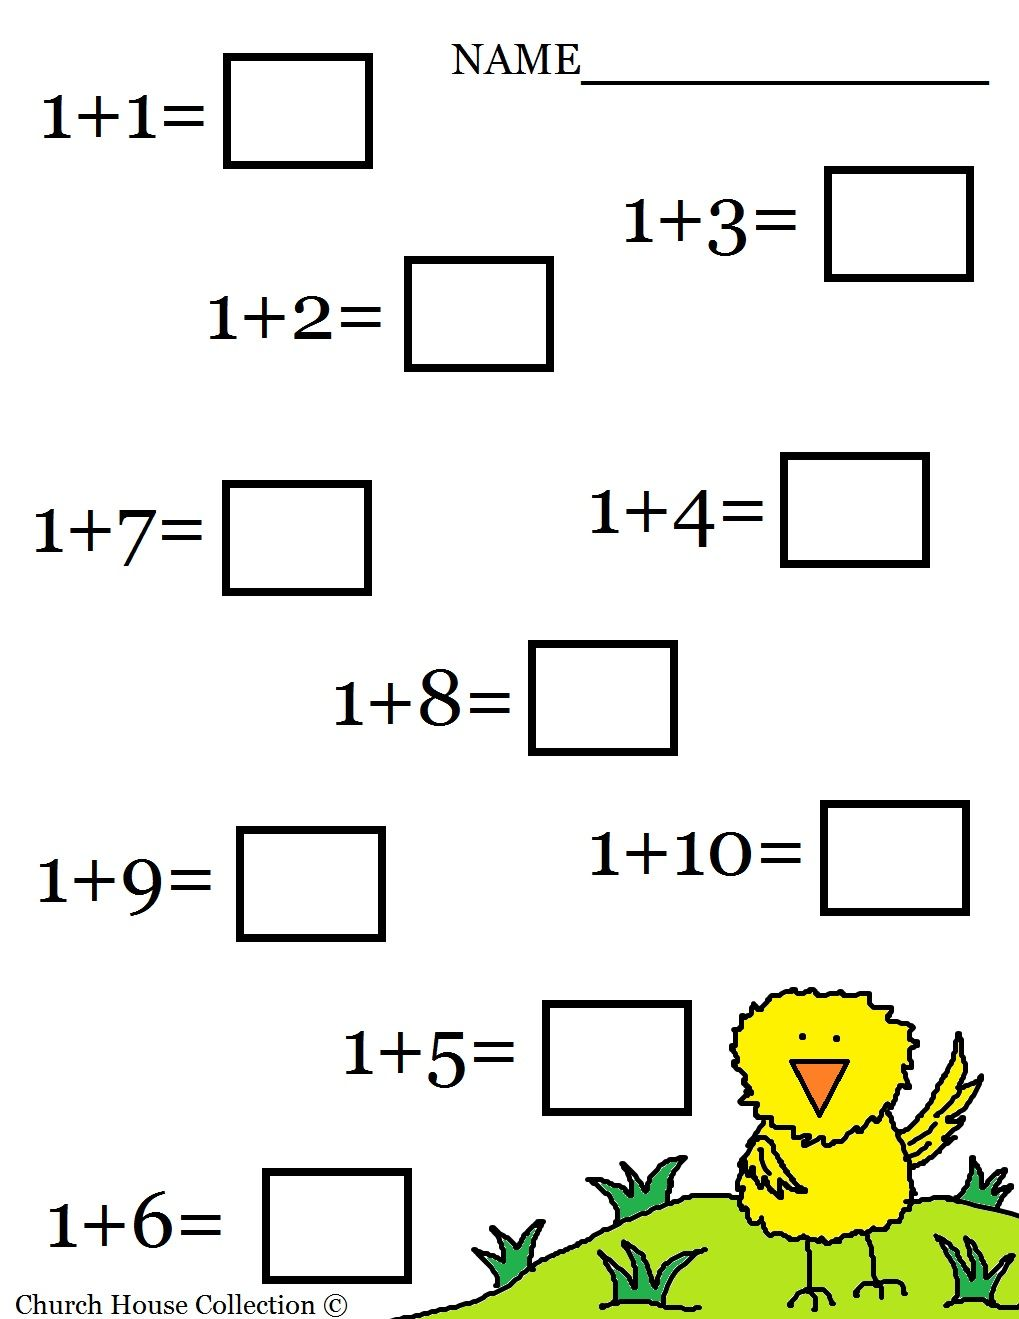 Weirdmailus  Gorgeous  Images About Worksheets  Math On Pinterest  Math Sheets  With Goodlooking  Images About Worksheets  Math On Pinterest  Math Sheets Math Worksheets For Kindergarten And Simple Addition With Astounding Number Order Worksheet Also Social Skills Worksheets For Children In Addition Spain Worksheets And Metaphor Worksheets For Rd Grade As Well As St Grade Capitalization Worksheets Additionally Dna Transcription Translation Worksheet From Pinterestcom With Weirdmailus  Goodlooking  Images About Worksheets  Math On Pinterest  Math Sheets  With Astounding  Images About Worksheets  Math On Pinterest  Math Sheets Math Worksheets For Kindergarten And Simple Addition And Gorgeous Number Order Worksheet Also Social Skills Worksheets For Children In Addition Spain Worksheets From Pinterestcom